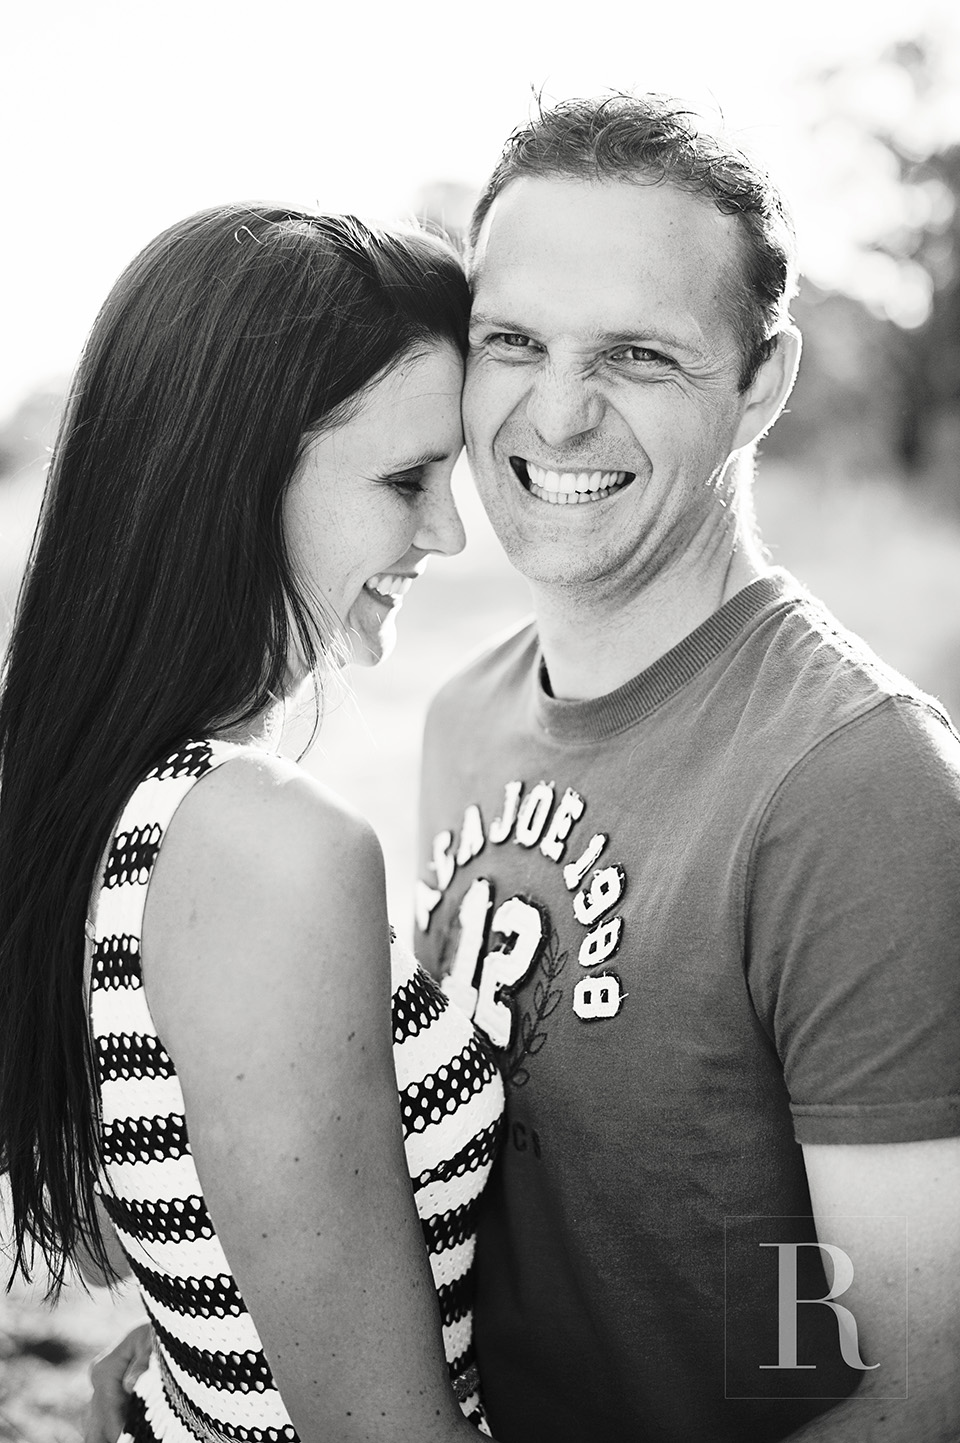 RYAN PARKER PHOTOGRAPHY_ESTEE & BERNARD_ENGAGEMENT SESSION_JOHANNESBURG DSC_1747.jpg